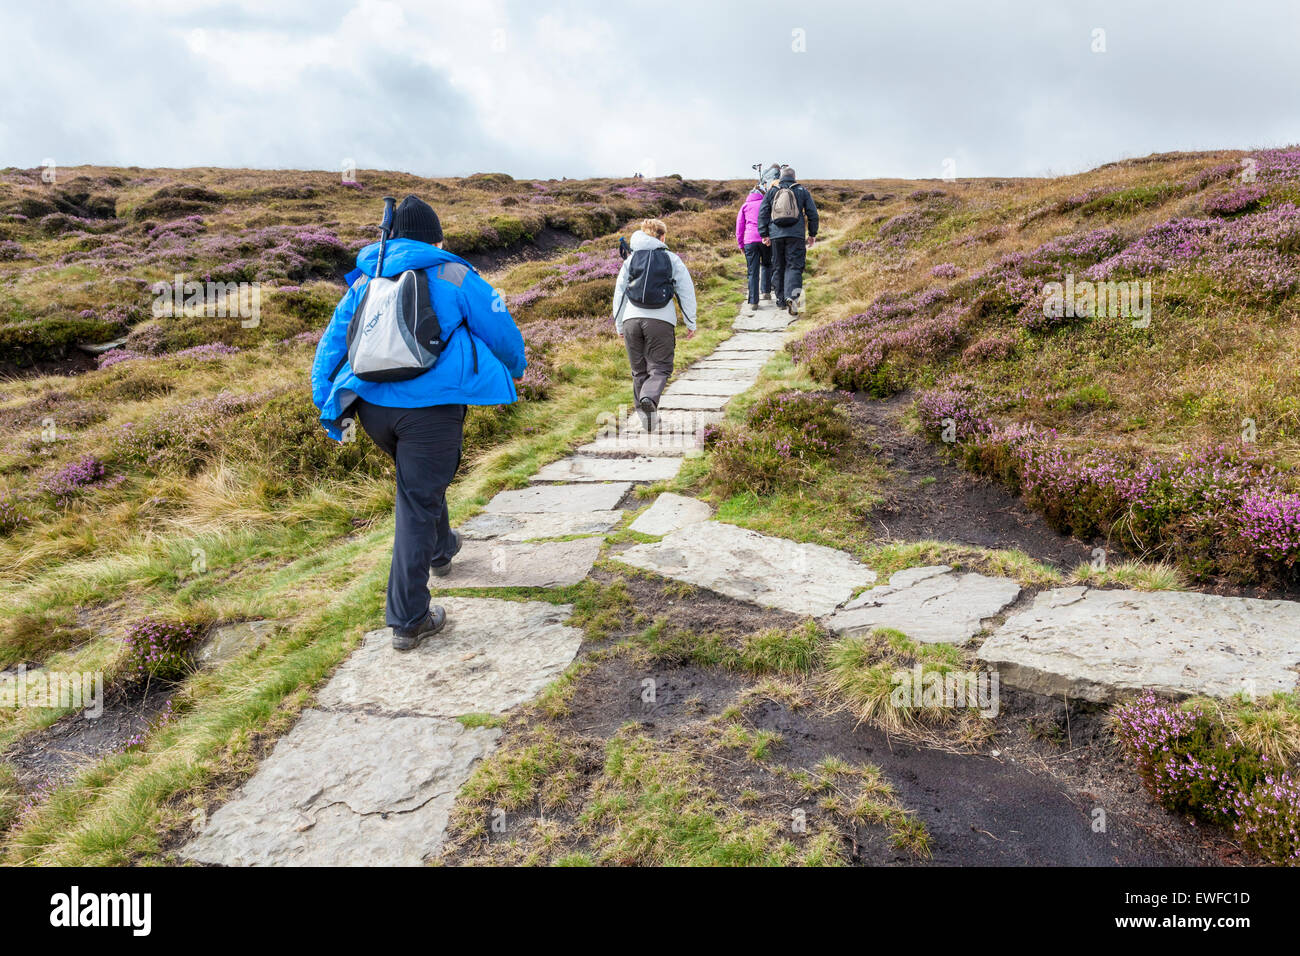 Walkers on a stone flag footpath, Kinder Scout, Derbyshire, Peak District, England, UK - Stock Image